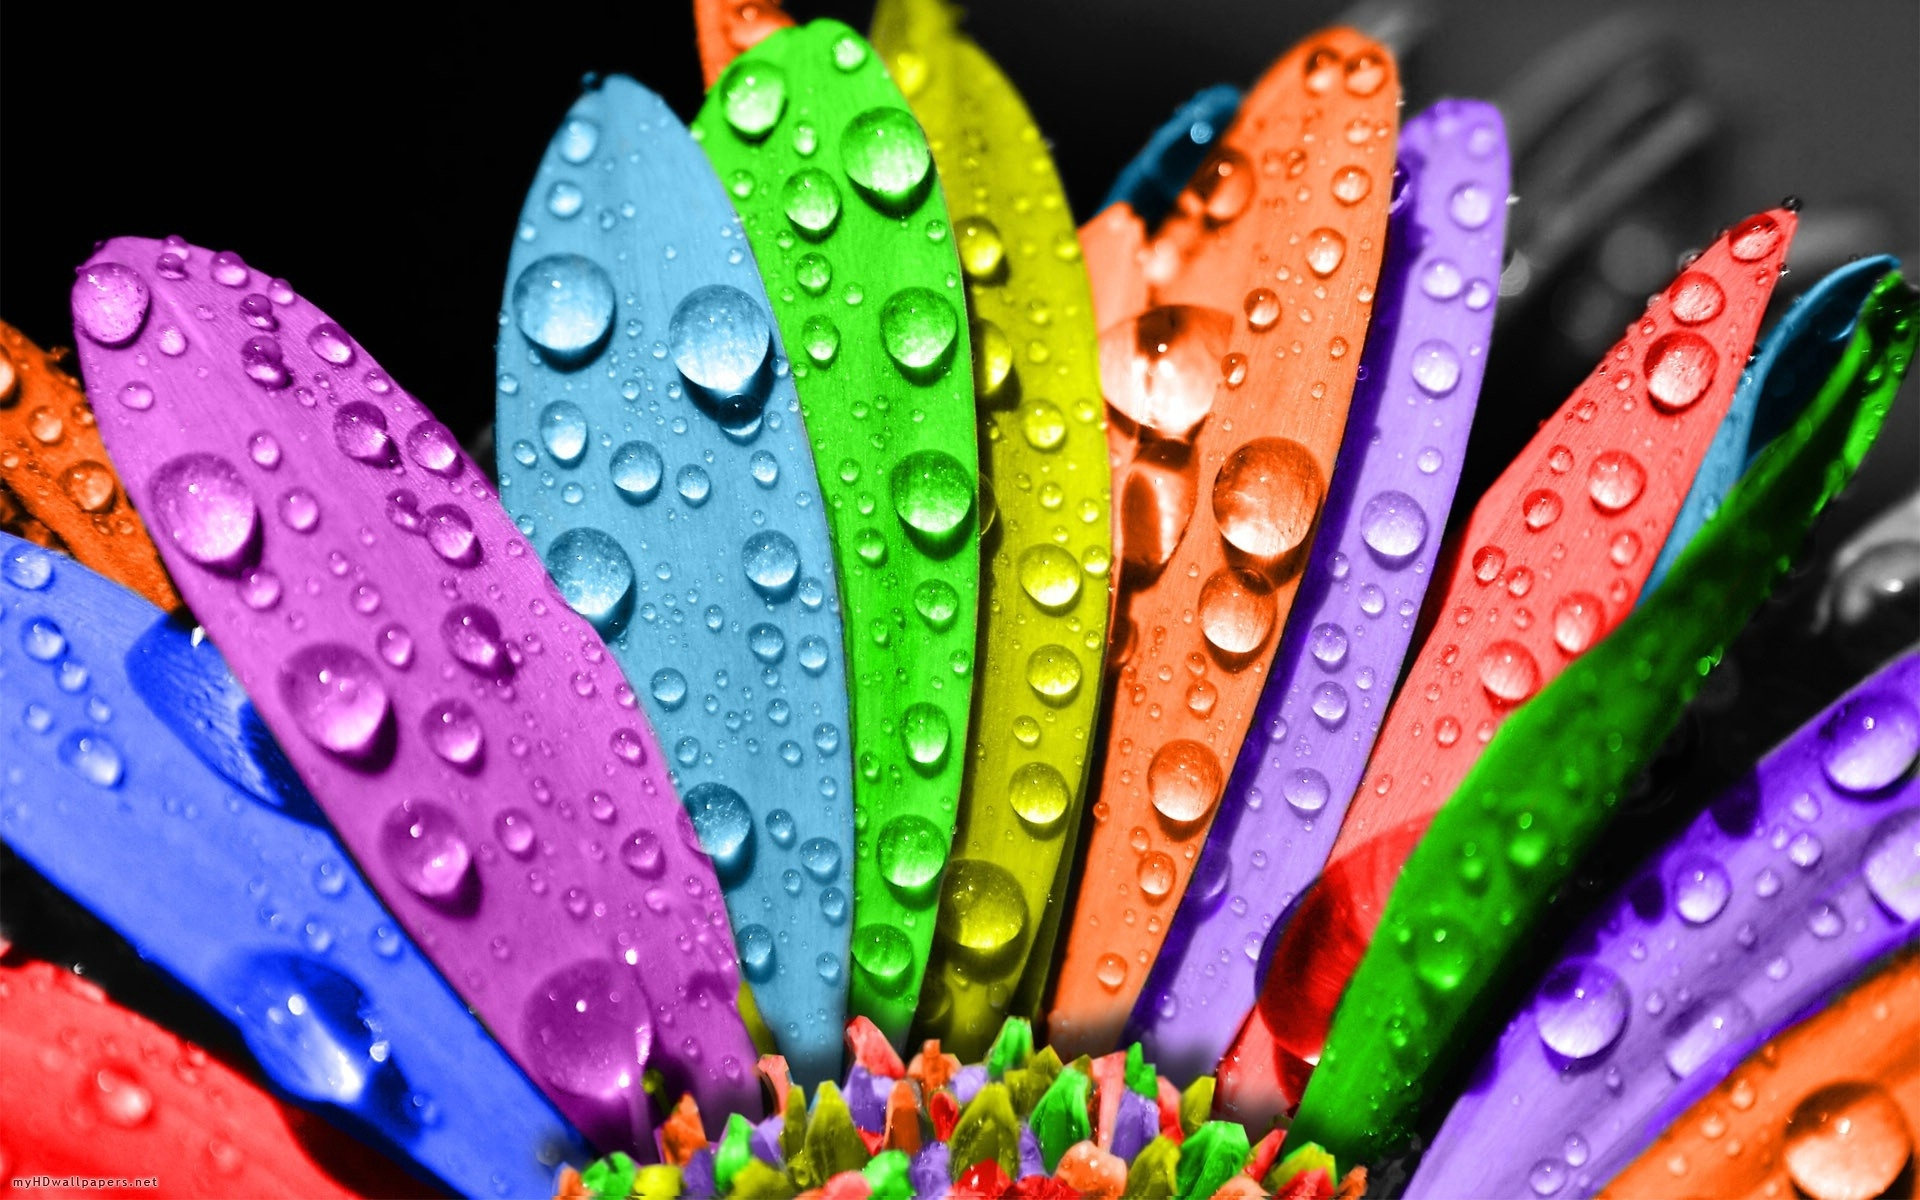 3d colorful wallpapers - wallpaper.wiki